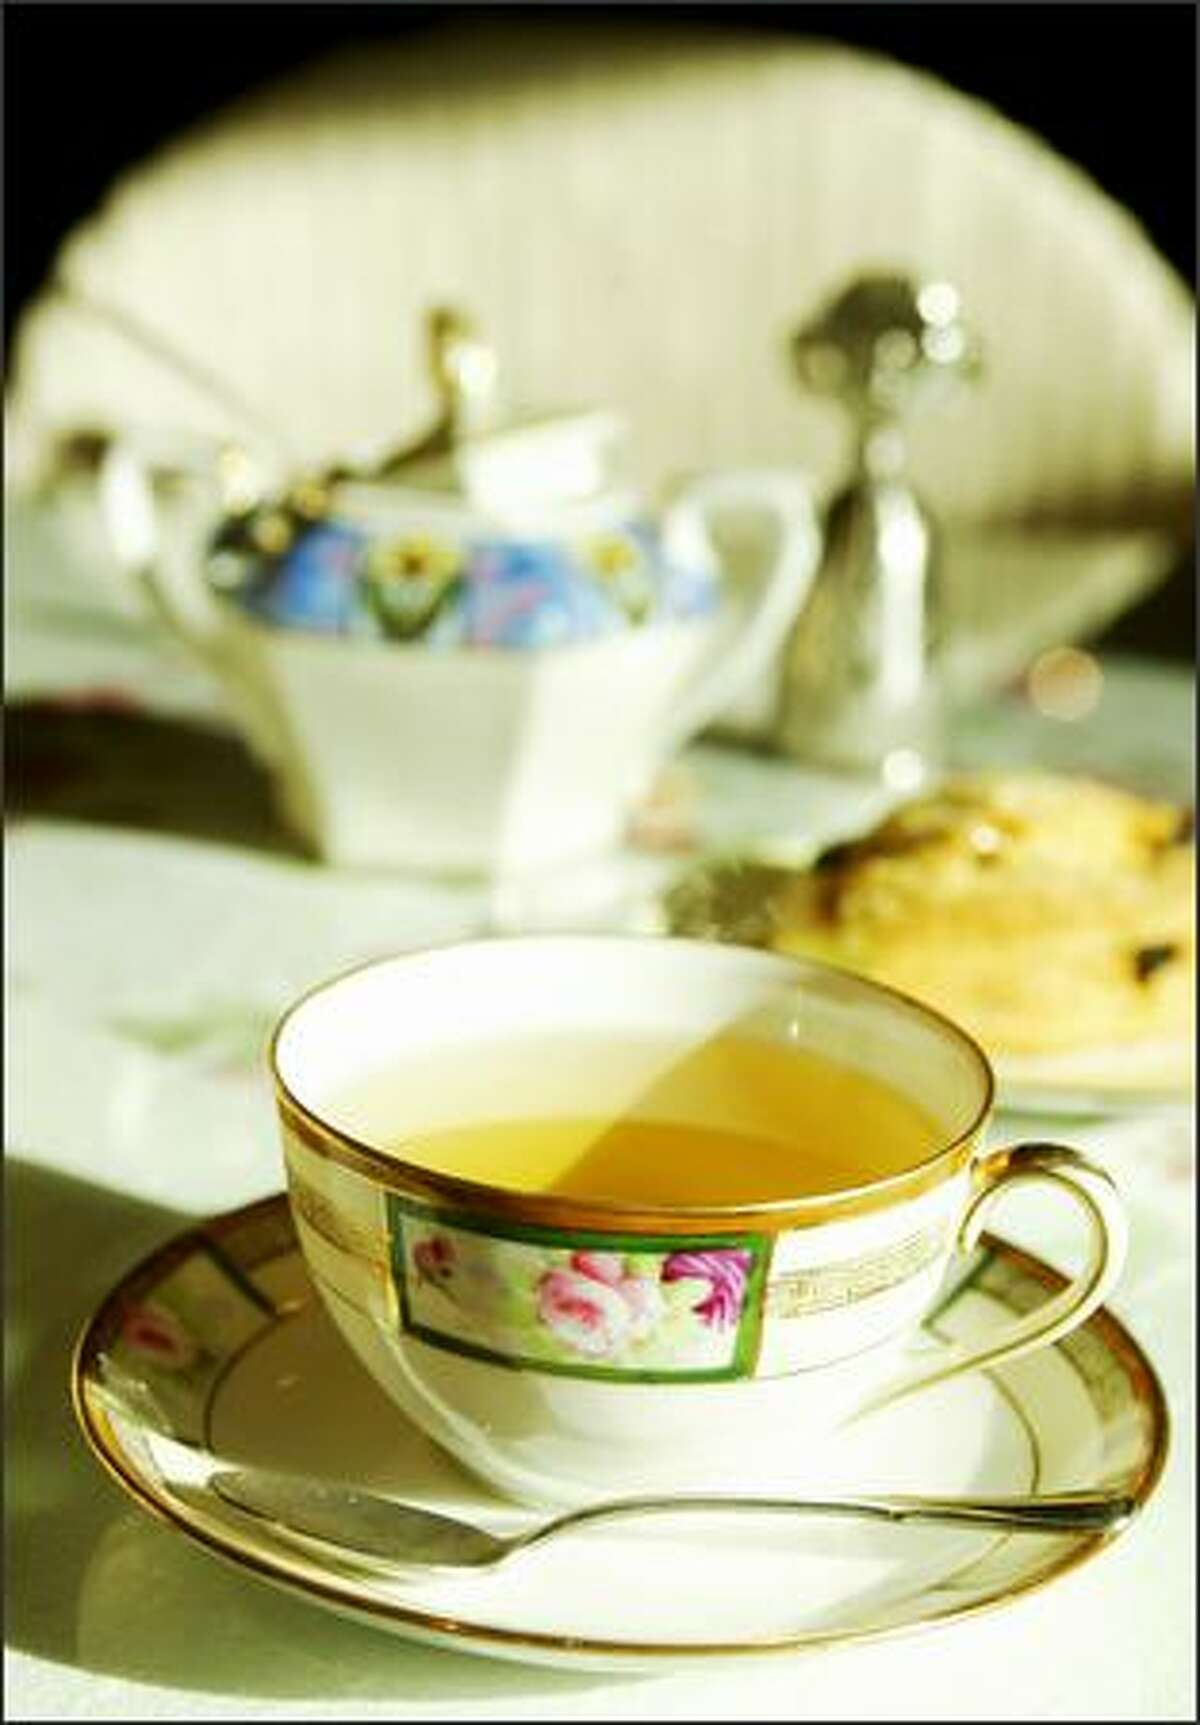 """""""A Night in Istanbul"""" is among the dozens of loose-leaf tea options served with ceremony and precision."""